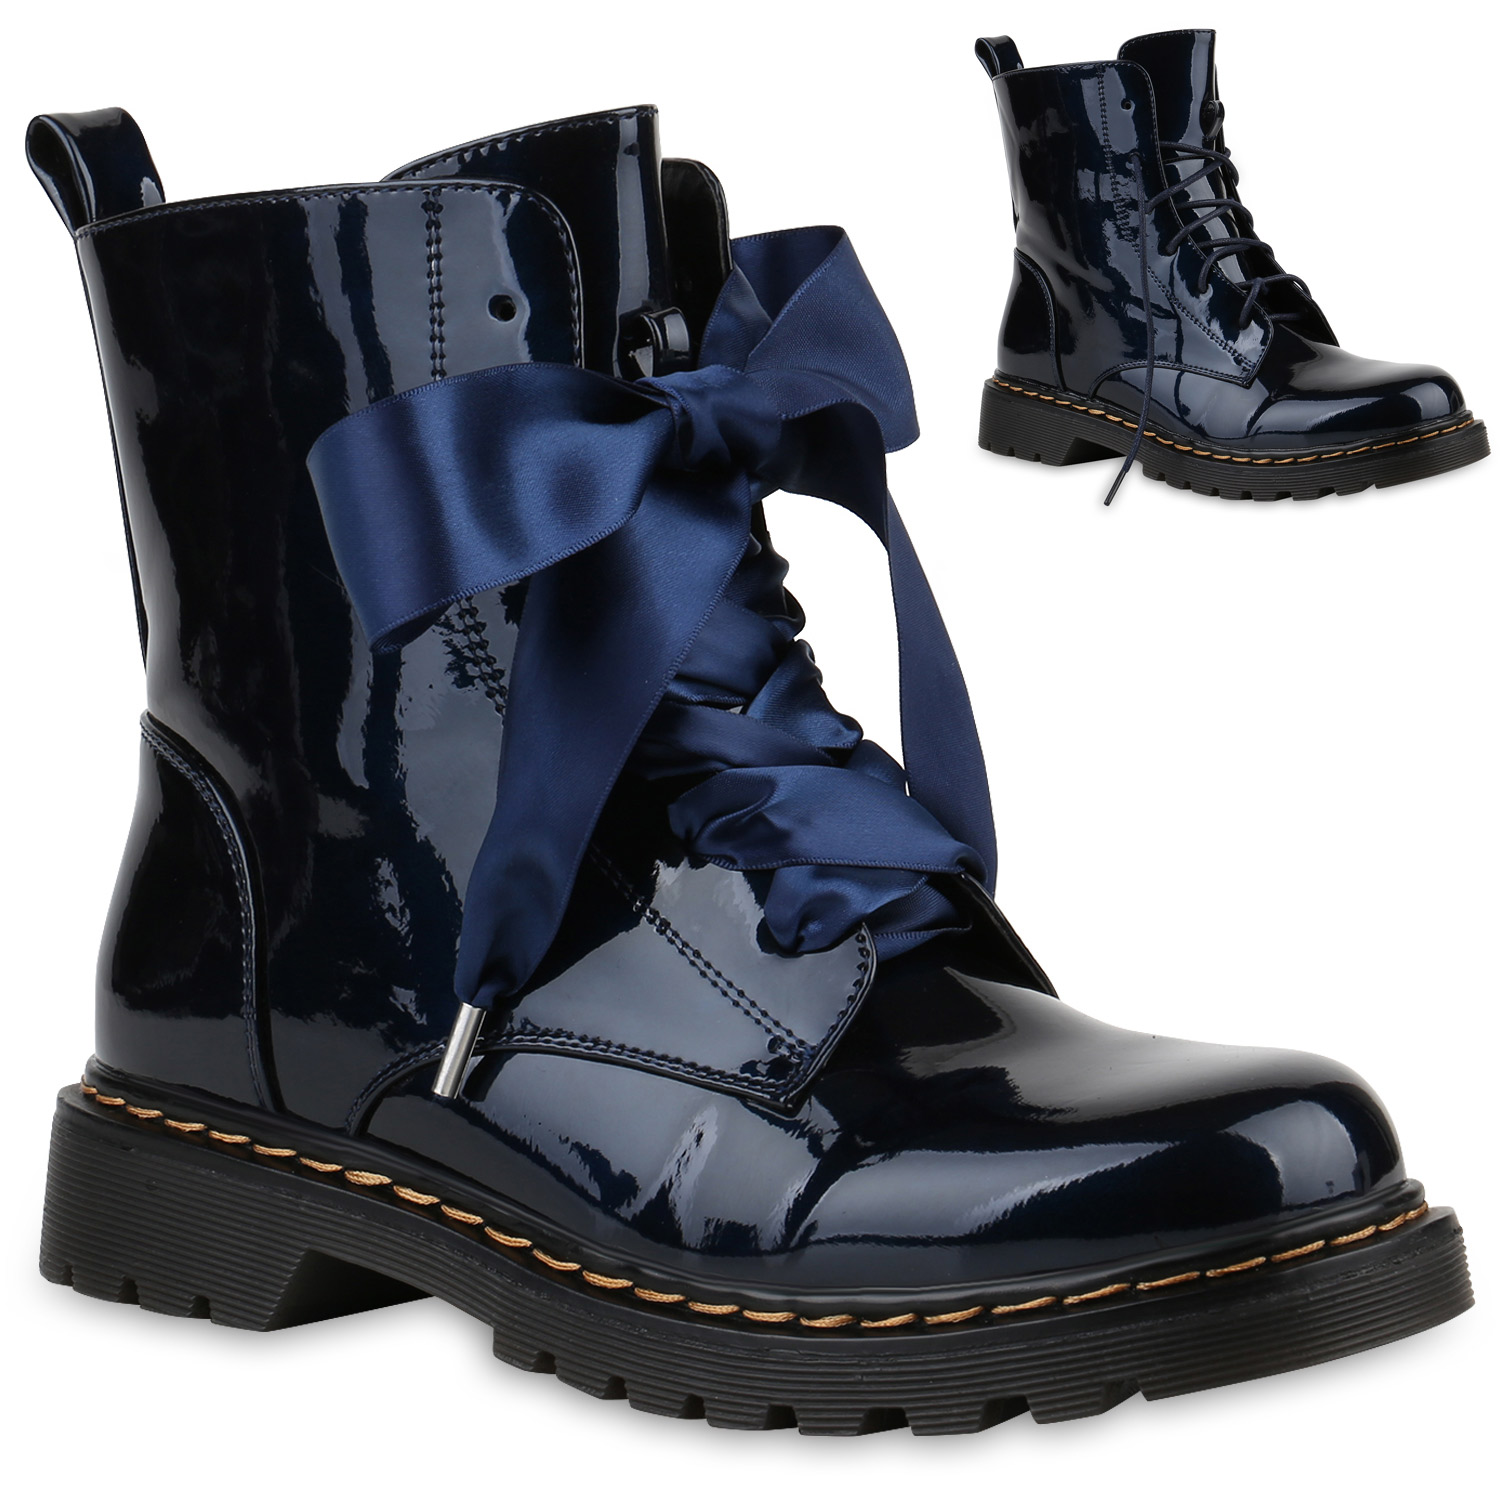 damen lack boots stiefeletten fransen schn rstiefel 77607 schuhe ebay. Black Bedroom Furniture Sets. Home Design Ideas